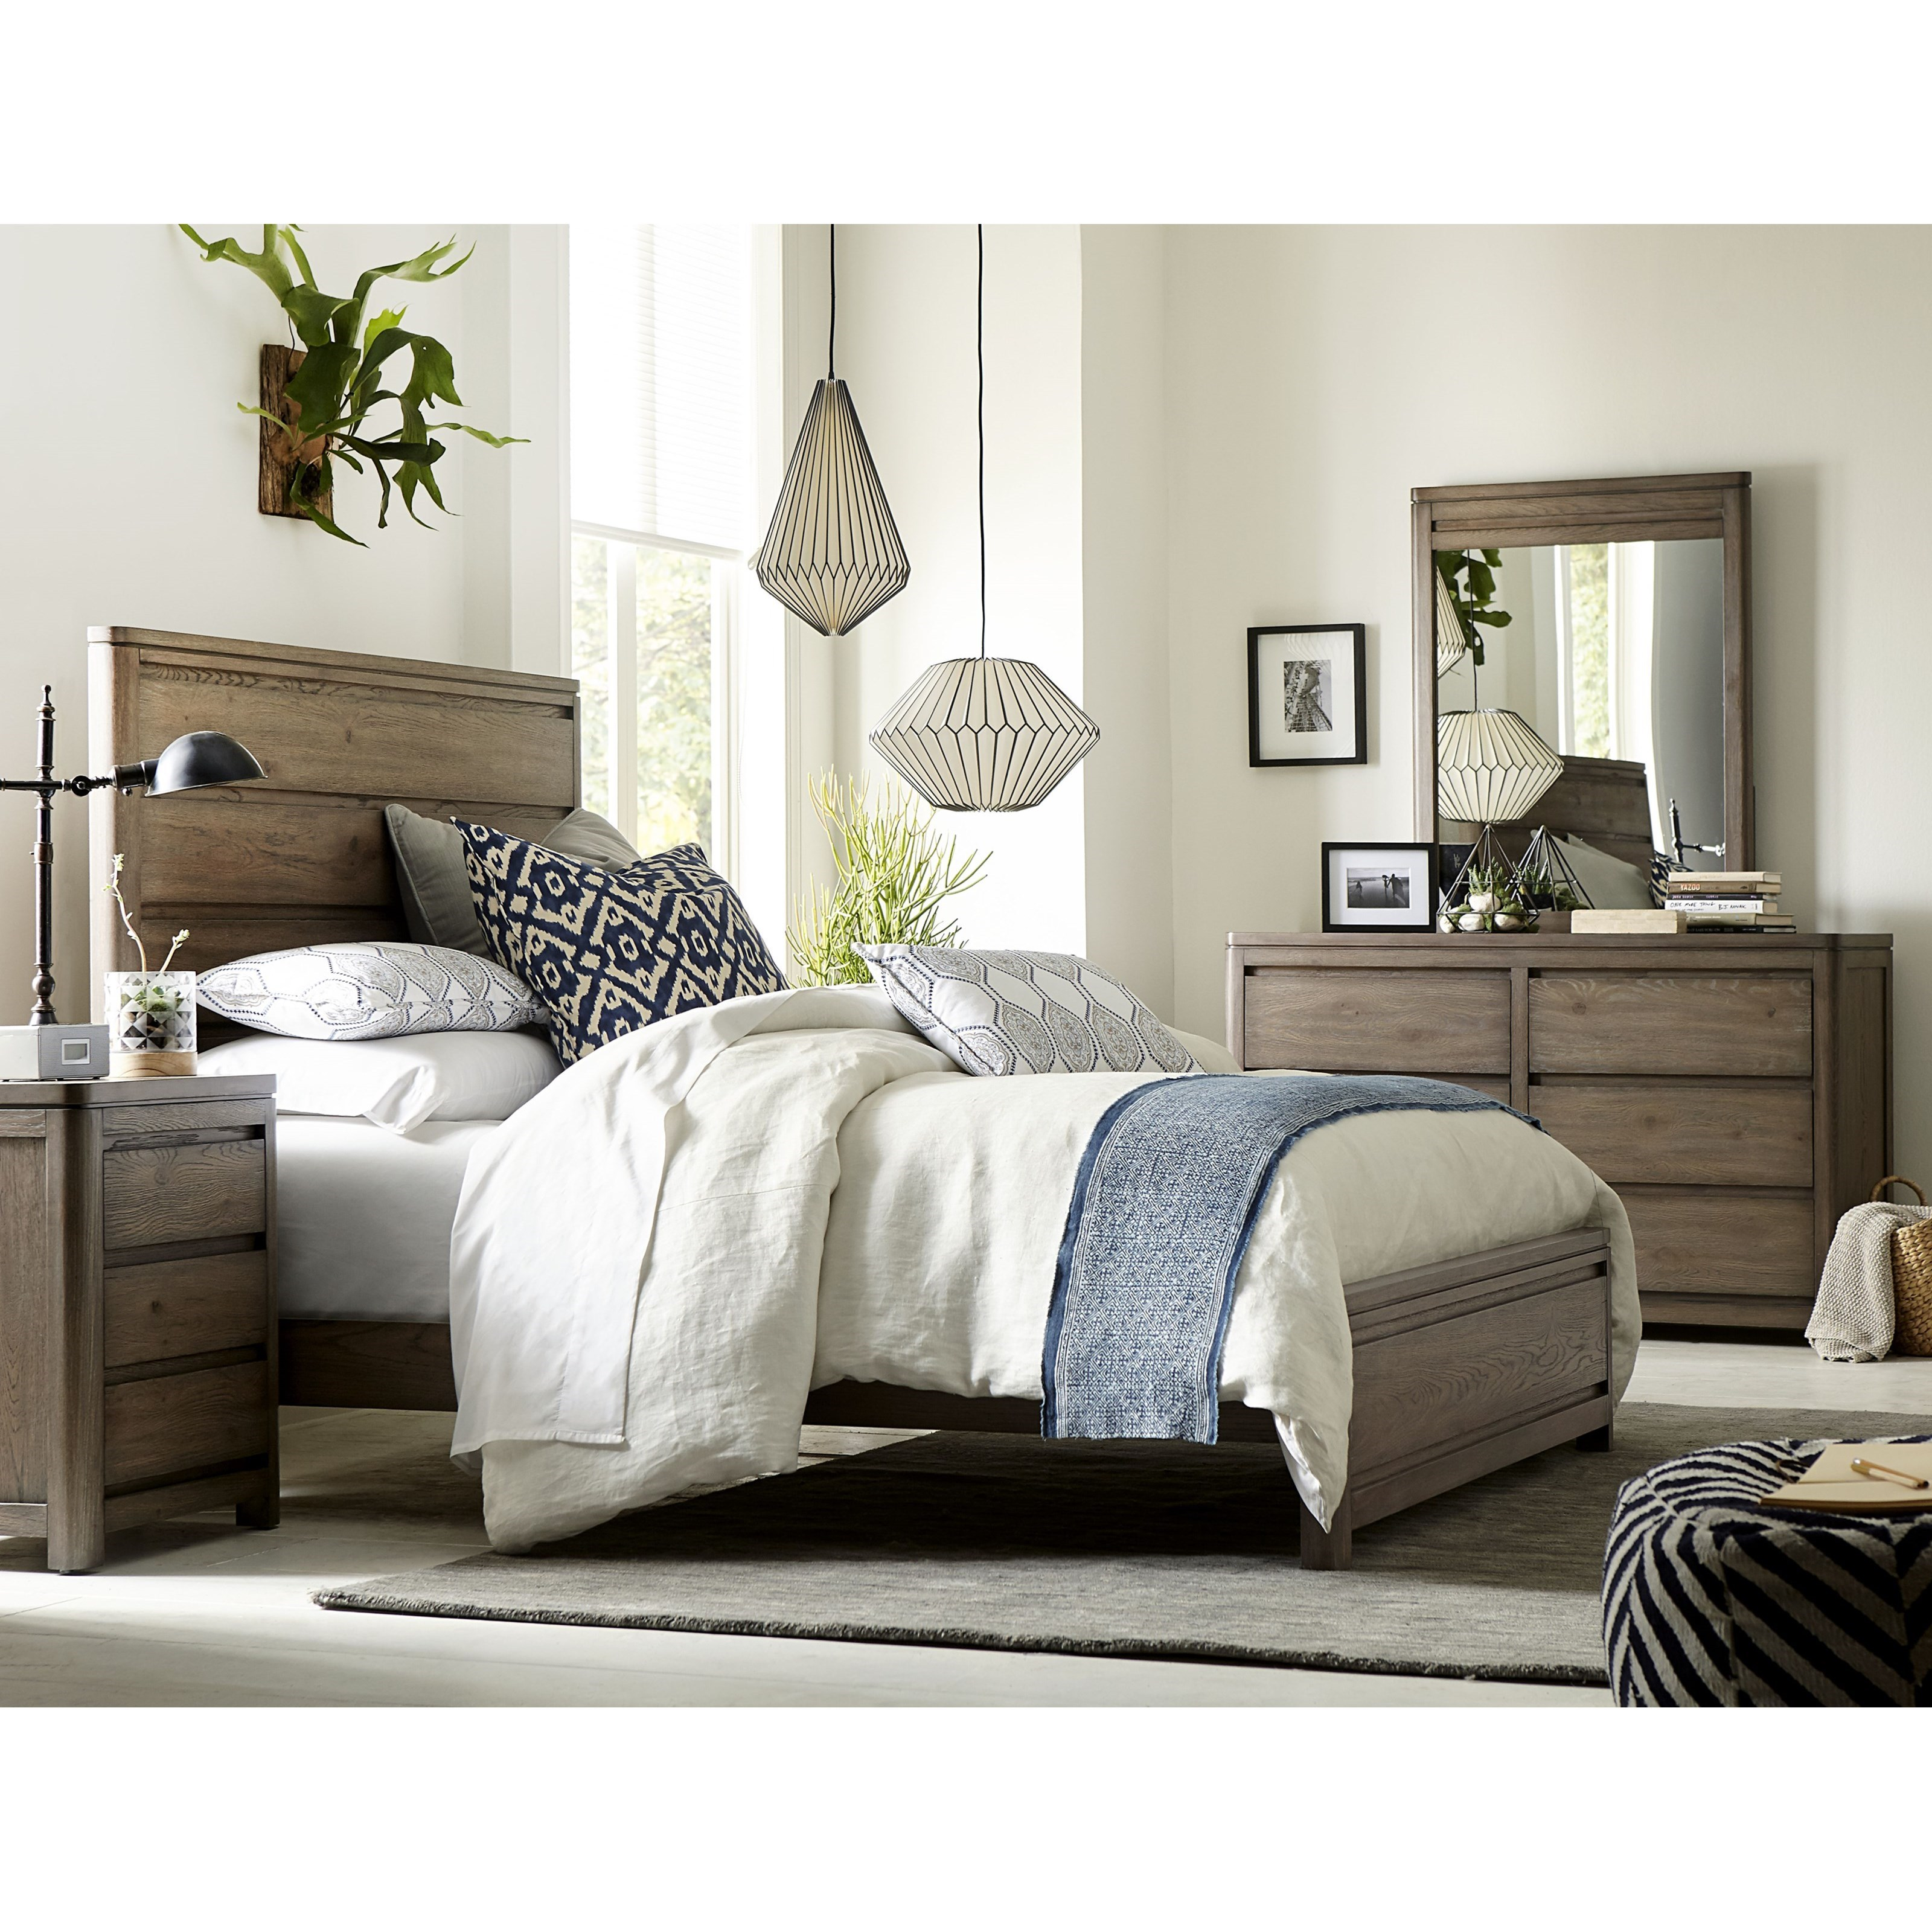 Kids Queen Bed Big Sky By Wendy Bellissimo Queen Bedroom Group By Legacy Classic Kids At Efo Furniture Outlet